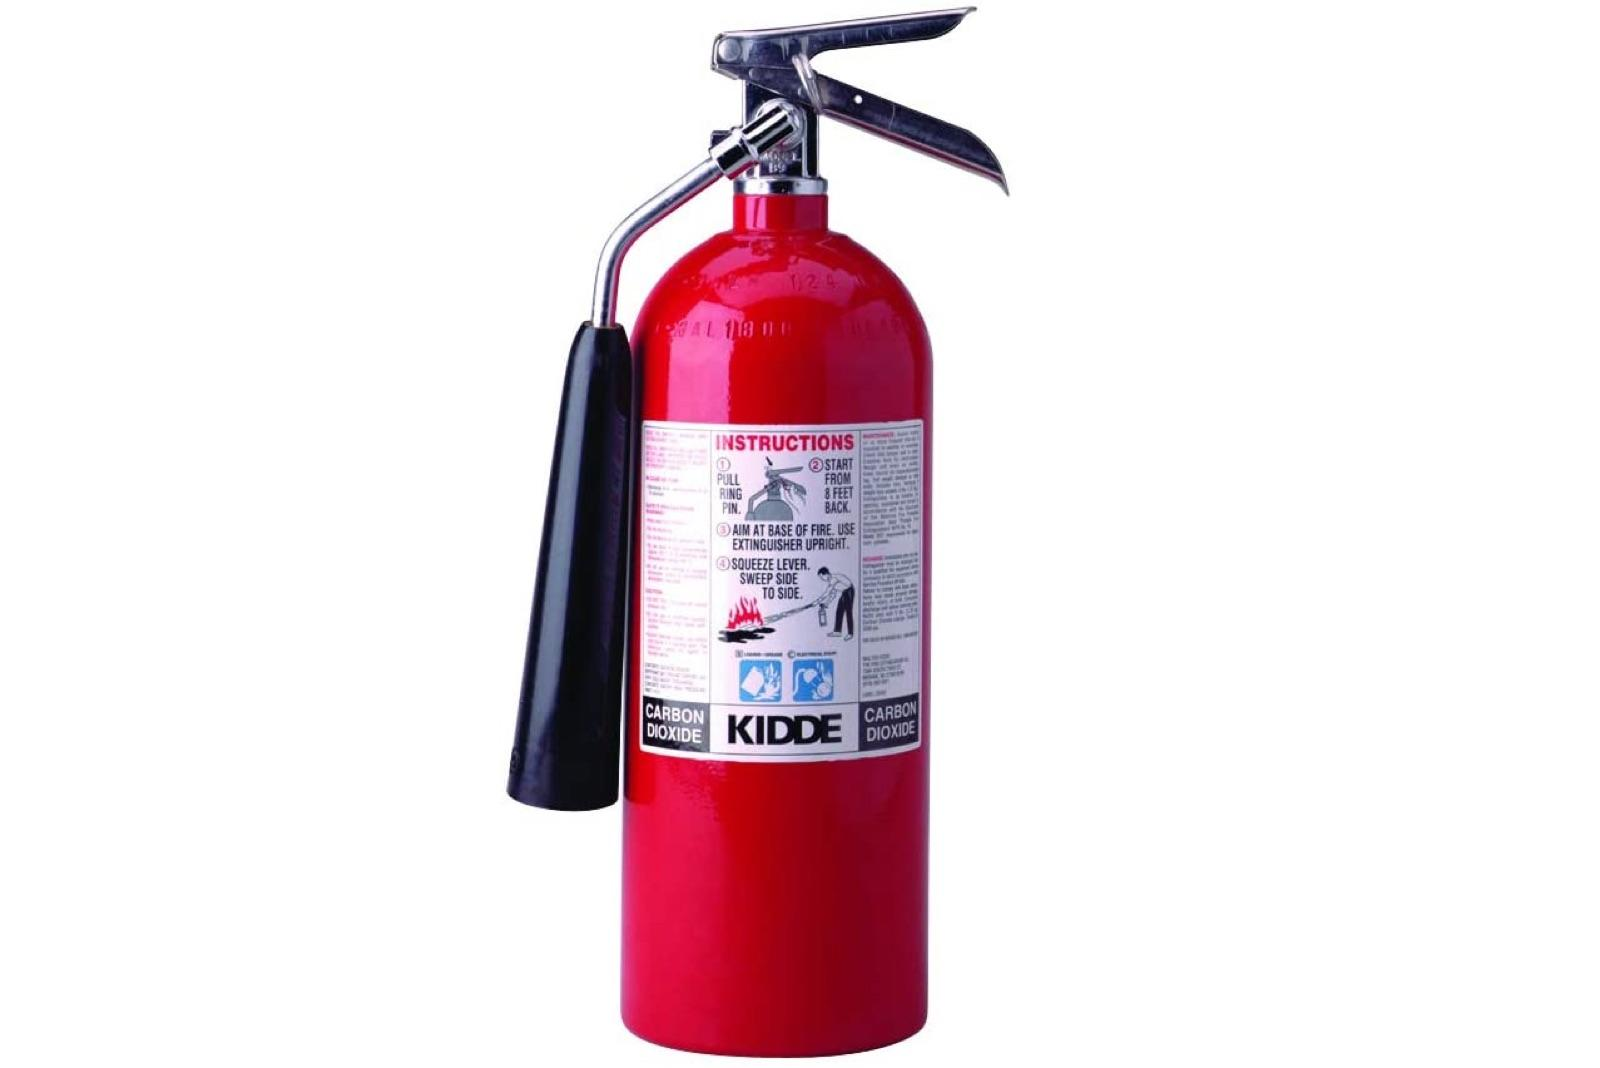 Kidde carbon dioxide fire extinguisher